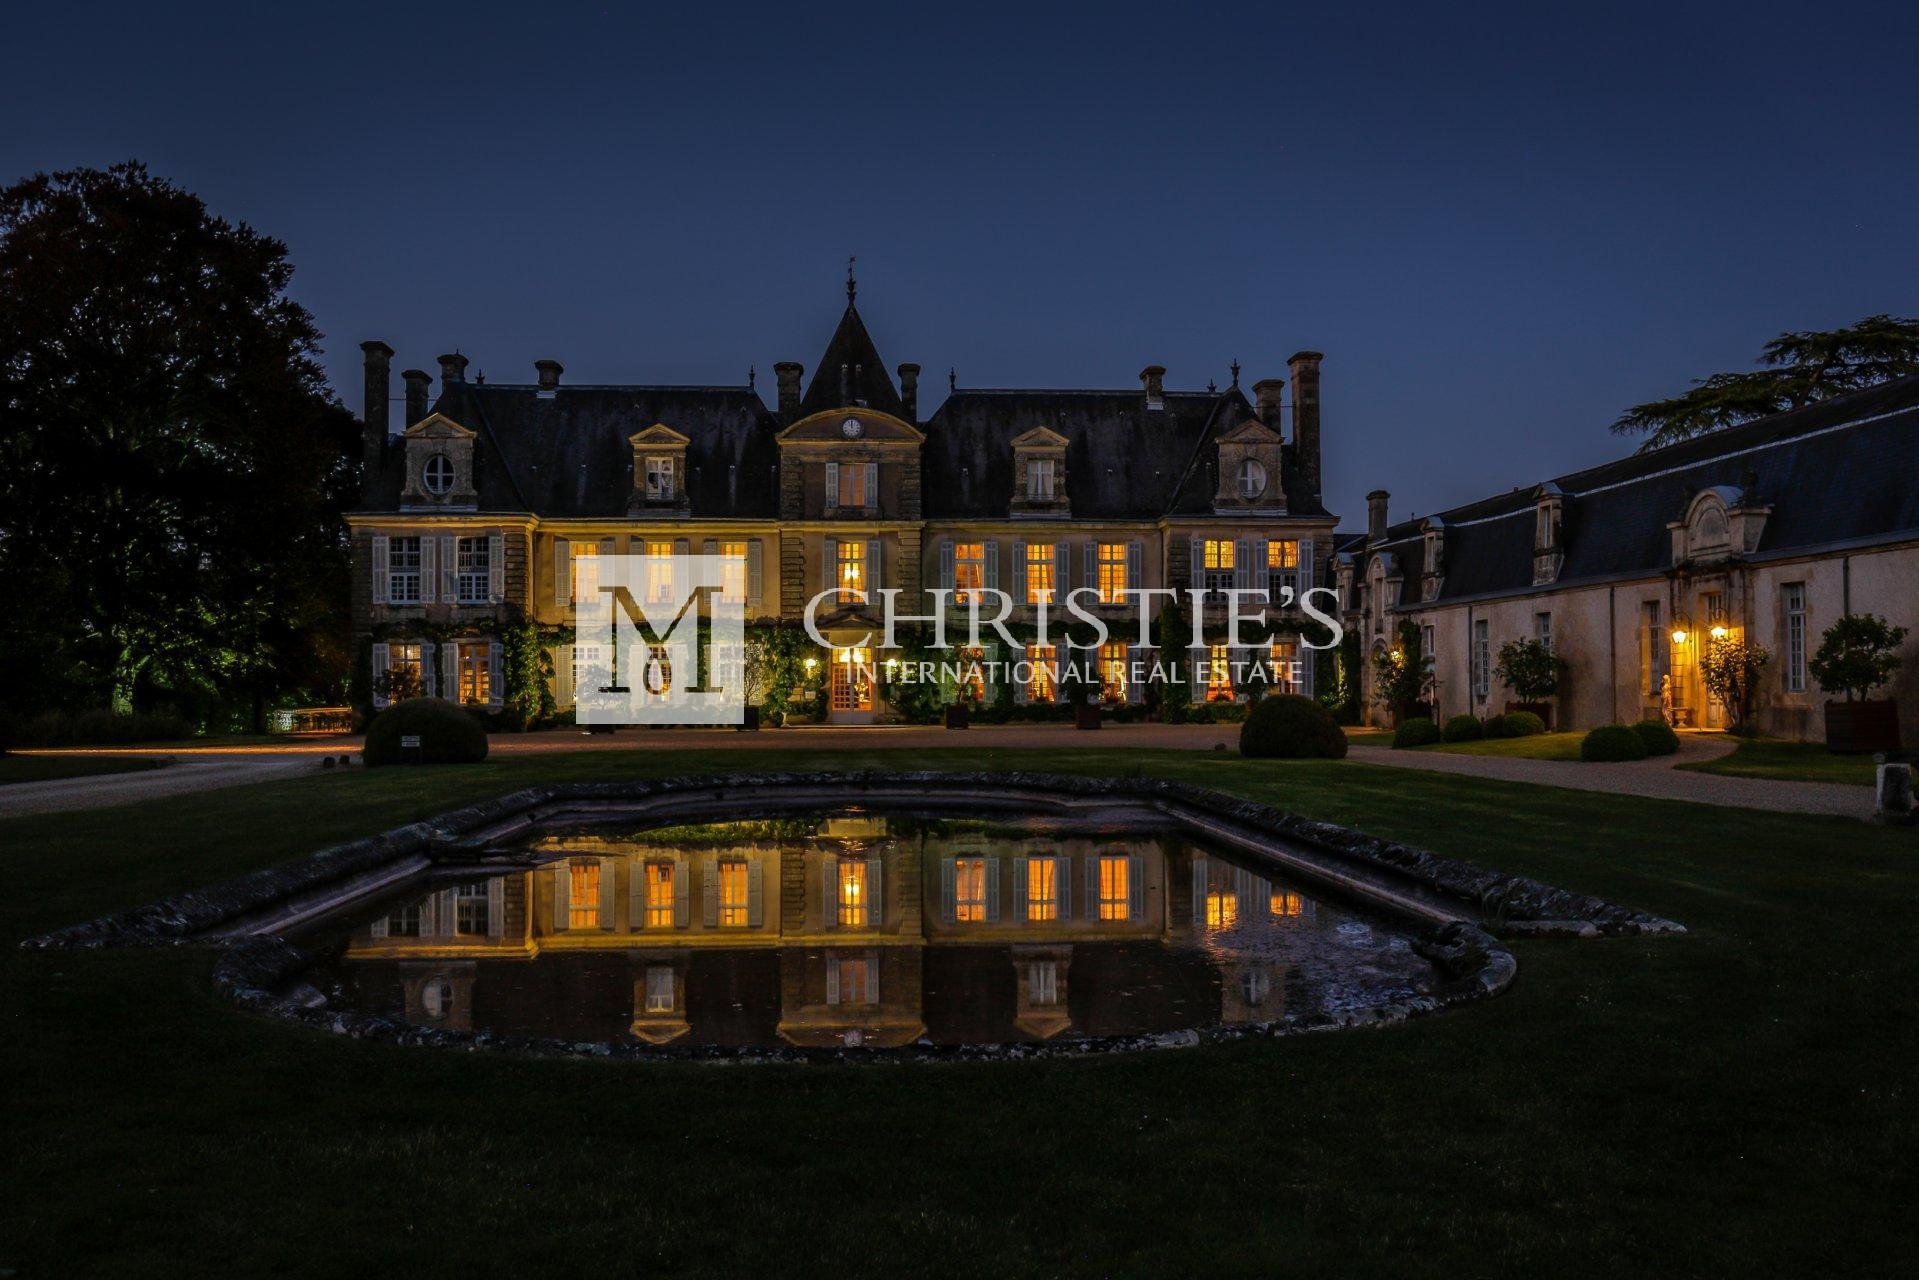 Large chateau with fountain in driveway